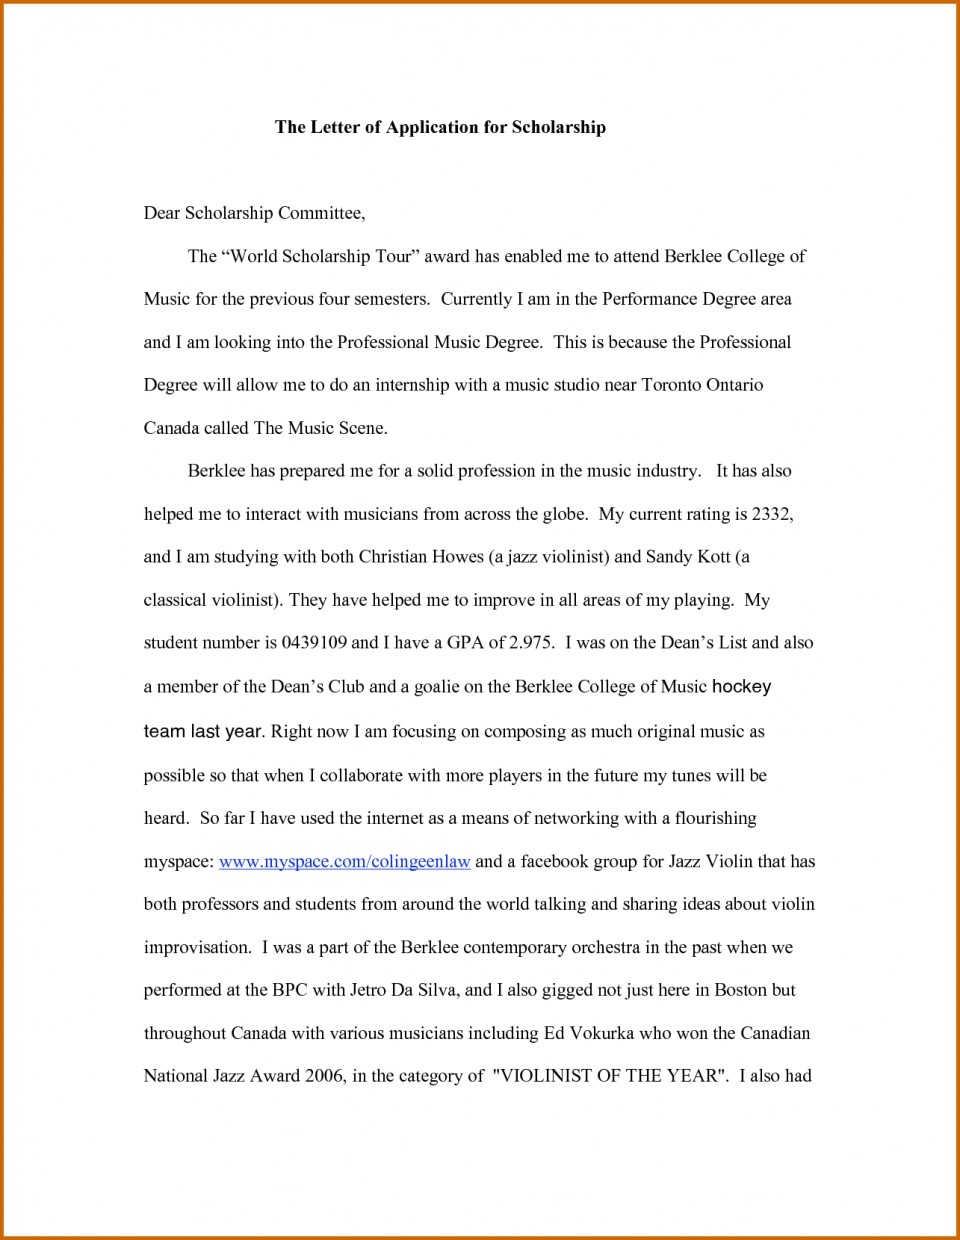 004 How To Write Scholarship Essay Example Me On Brexit Examples Who Am I Unbelievable A About Why You Deserve It Good Yourself Format 960